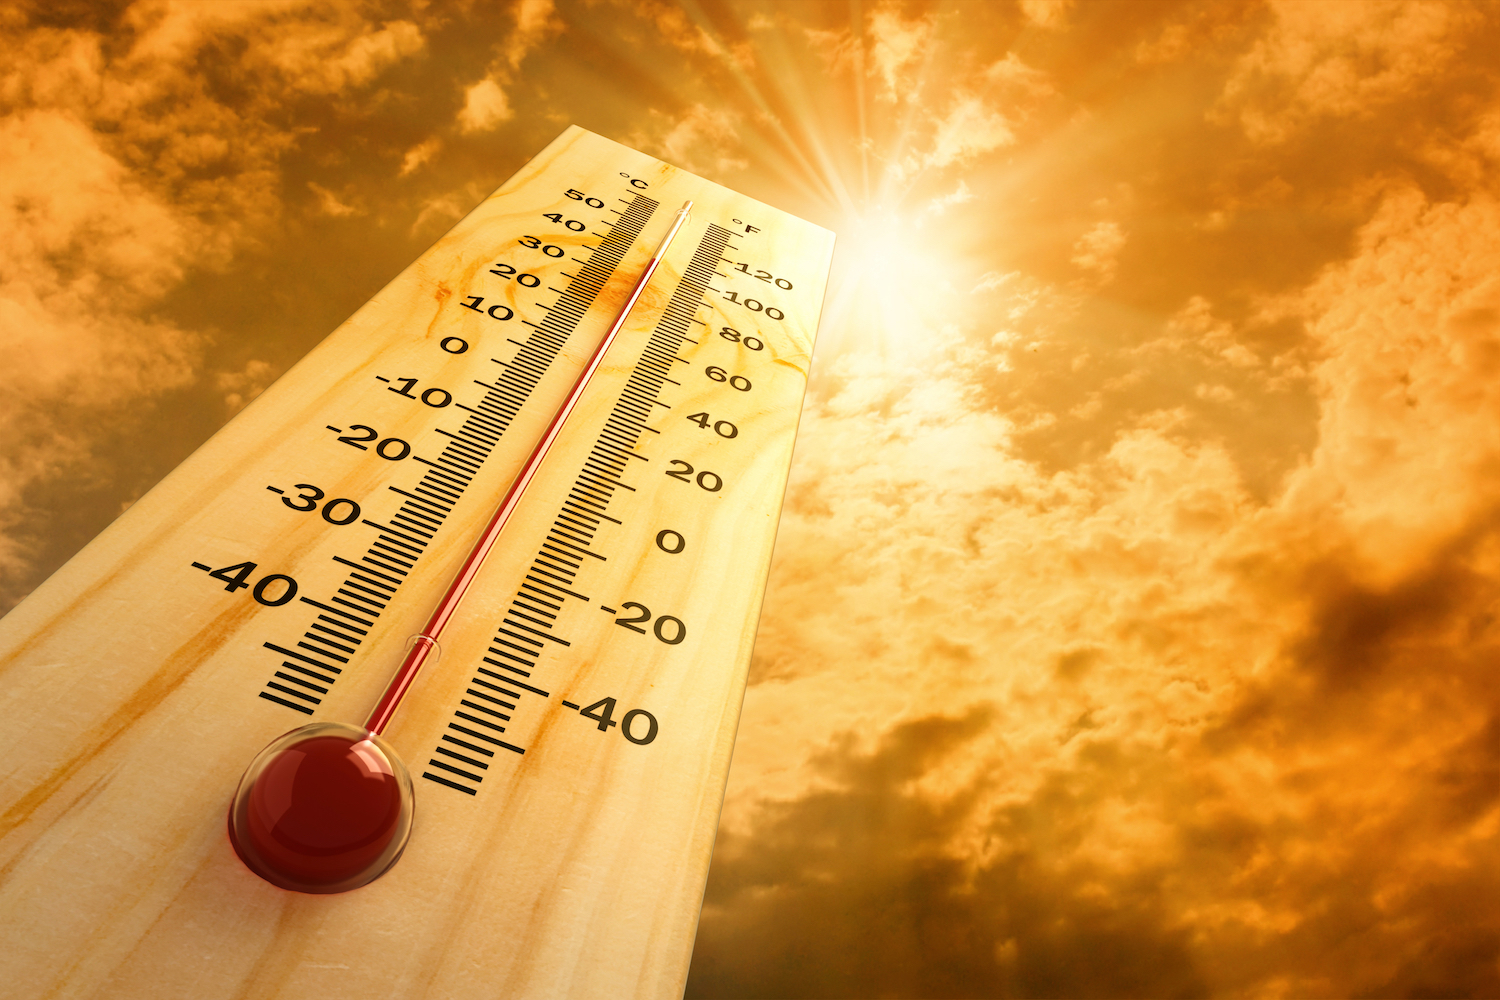 Although 2016 has secured its place as having the warmest temperatures on record since 1880, 2017 is not too far behind.